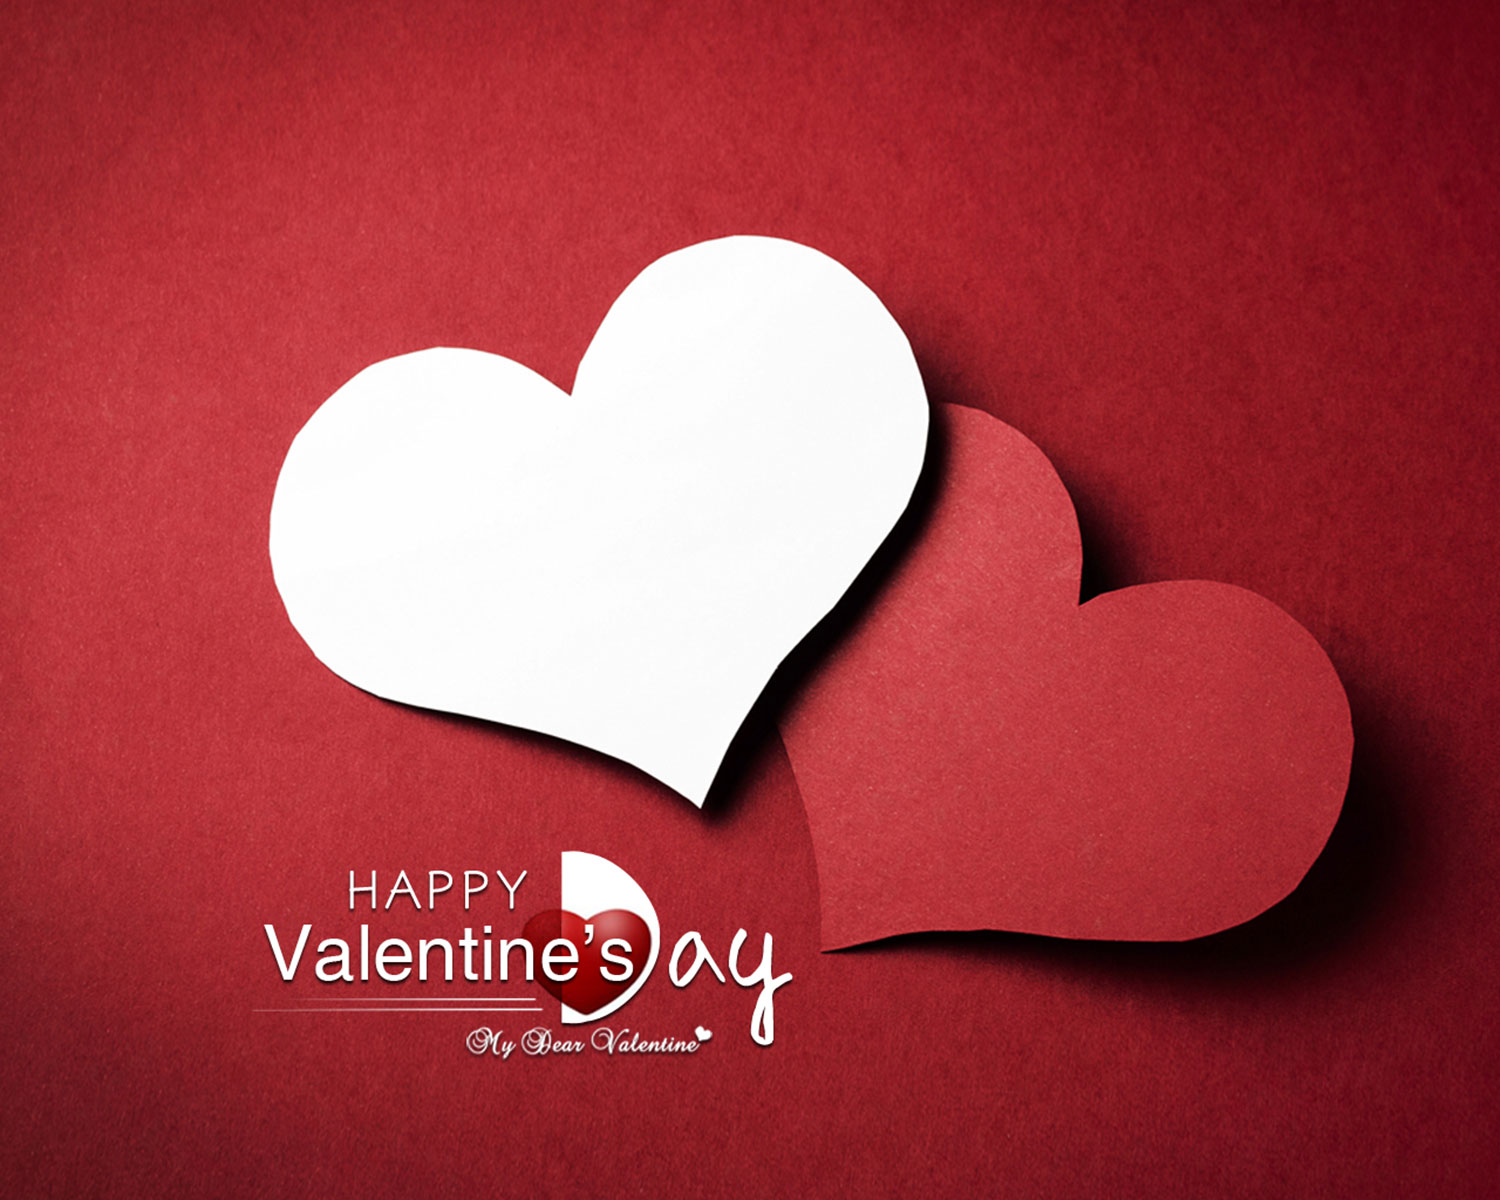 35 happy valentine\u0027s day hd wallpapers, backgrounds \u0026 pictureshappy valentine\u0027s day picture